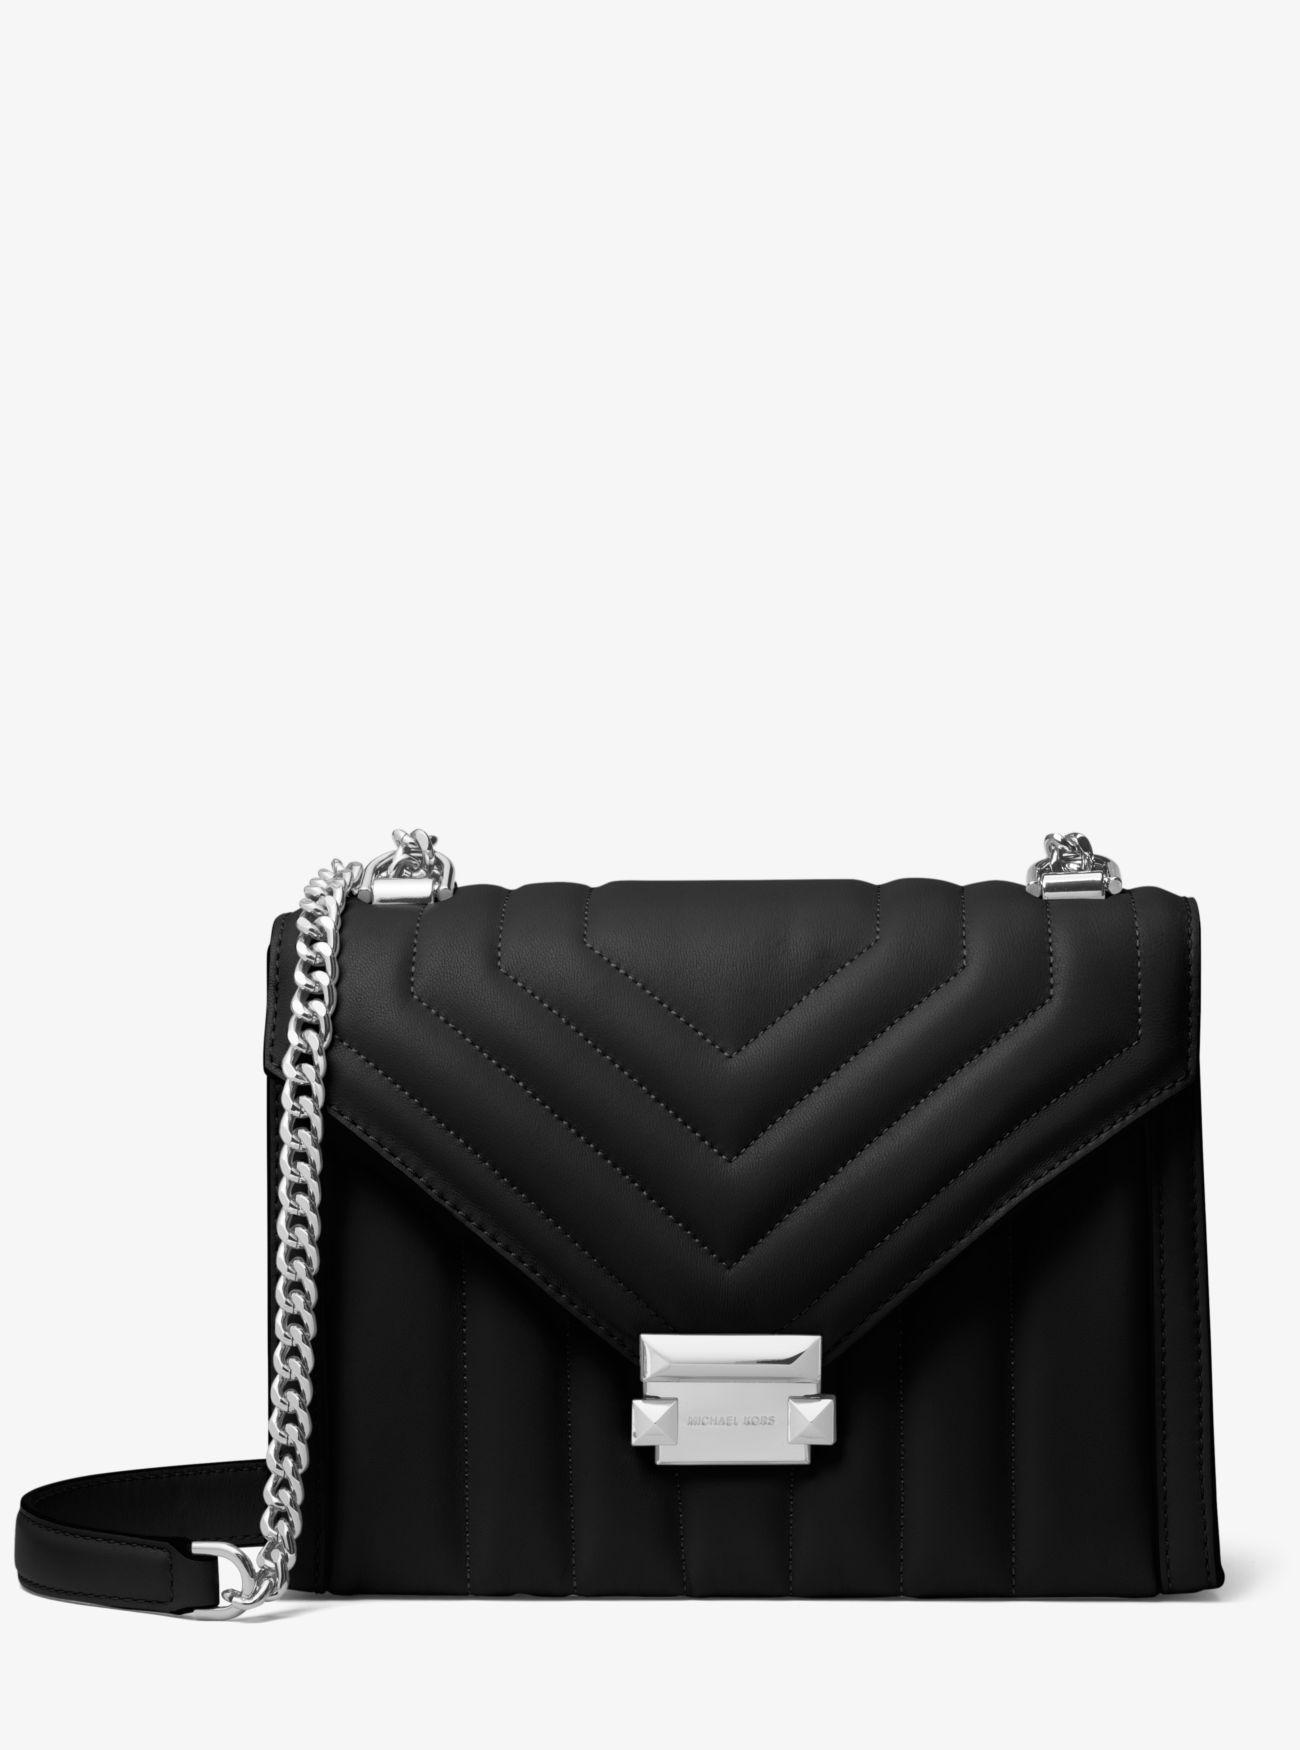 4cf1e952b2e6 Michael Kors. Women s Black Whitney Large Quilted Leather Convertible  Shoulder Bag